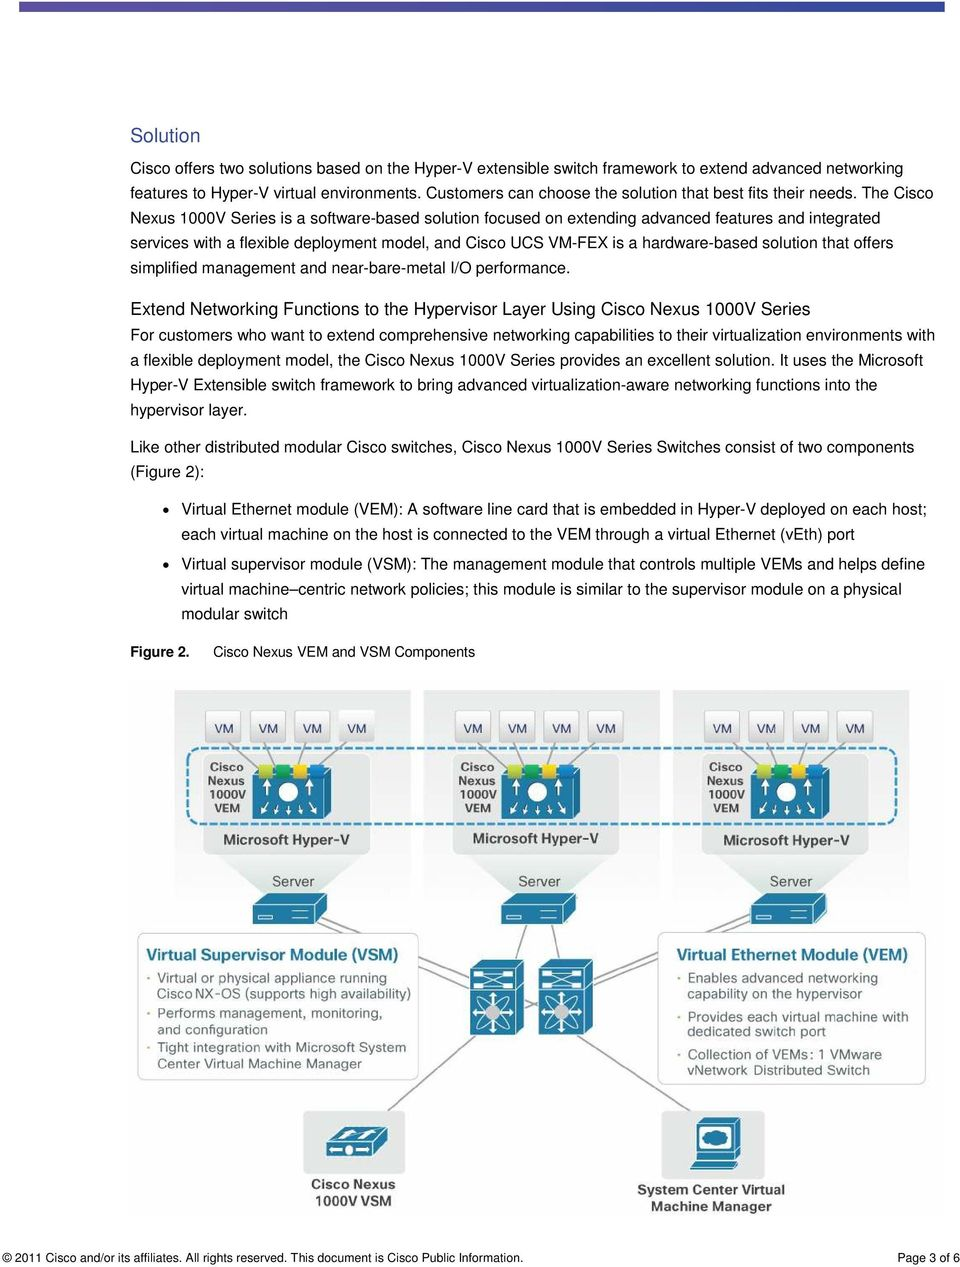 The Cisco Nexus 1000V Series is a software-based solution focused on extending advanced features and integrated services with a flexible deployment model, and Cisco UCS VM-FEX is a hardware-based